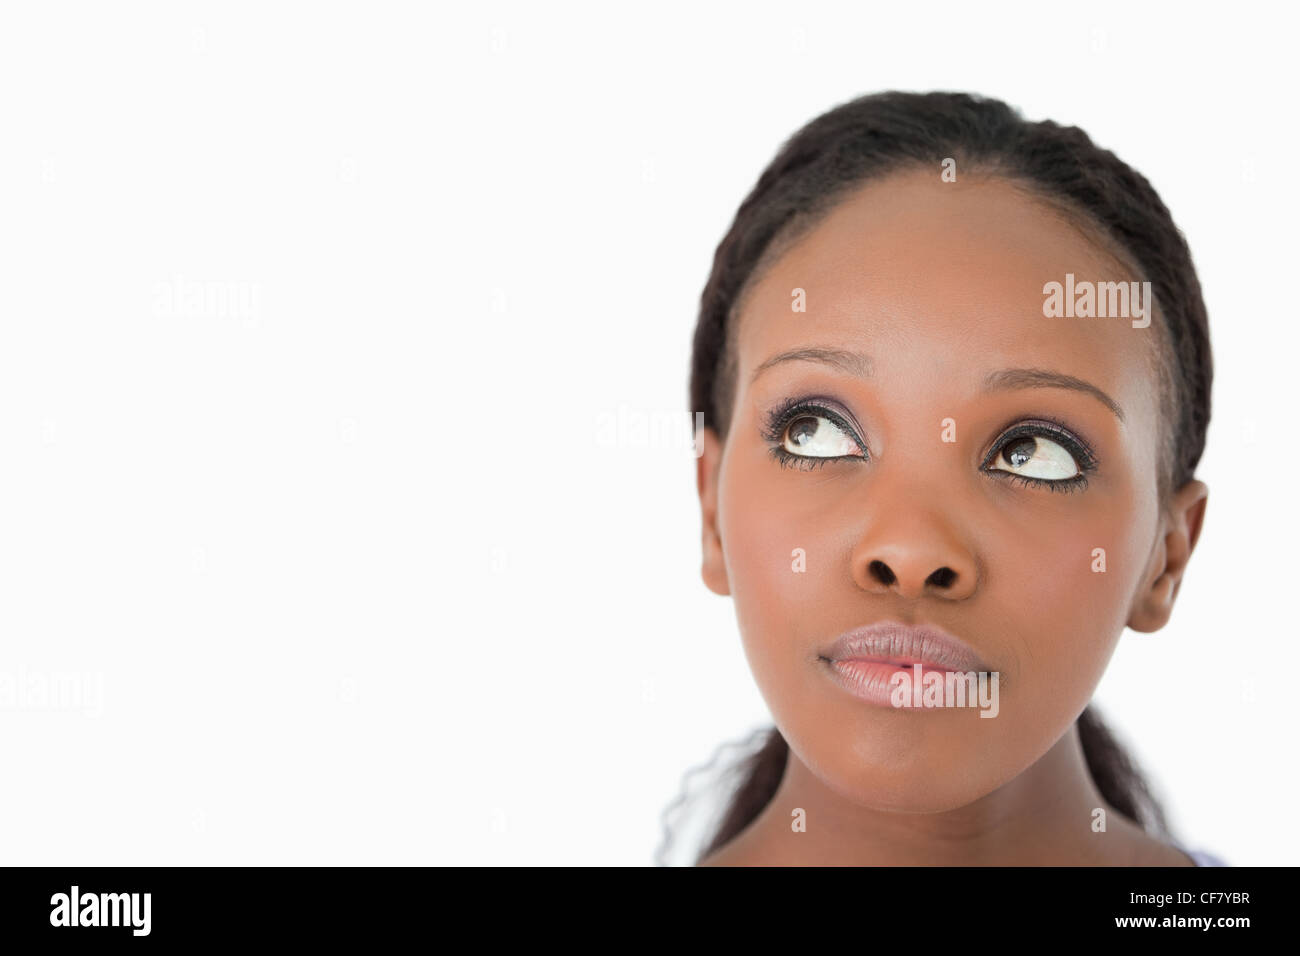 Close up of woman's face looking upwards diagonally on white background - Stock Image